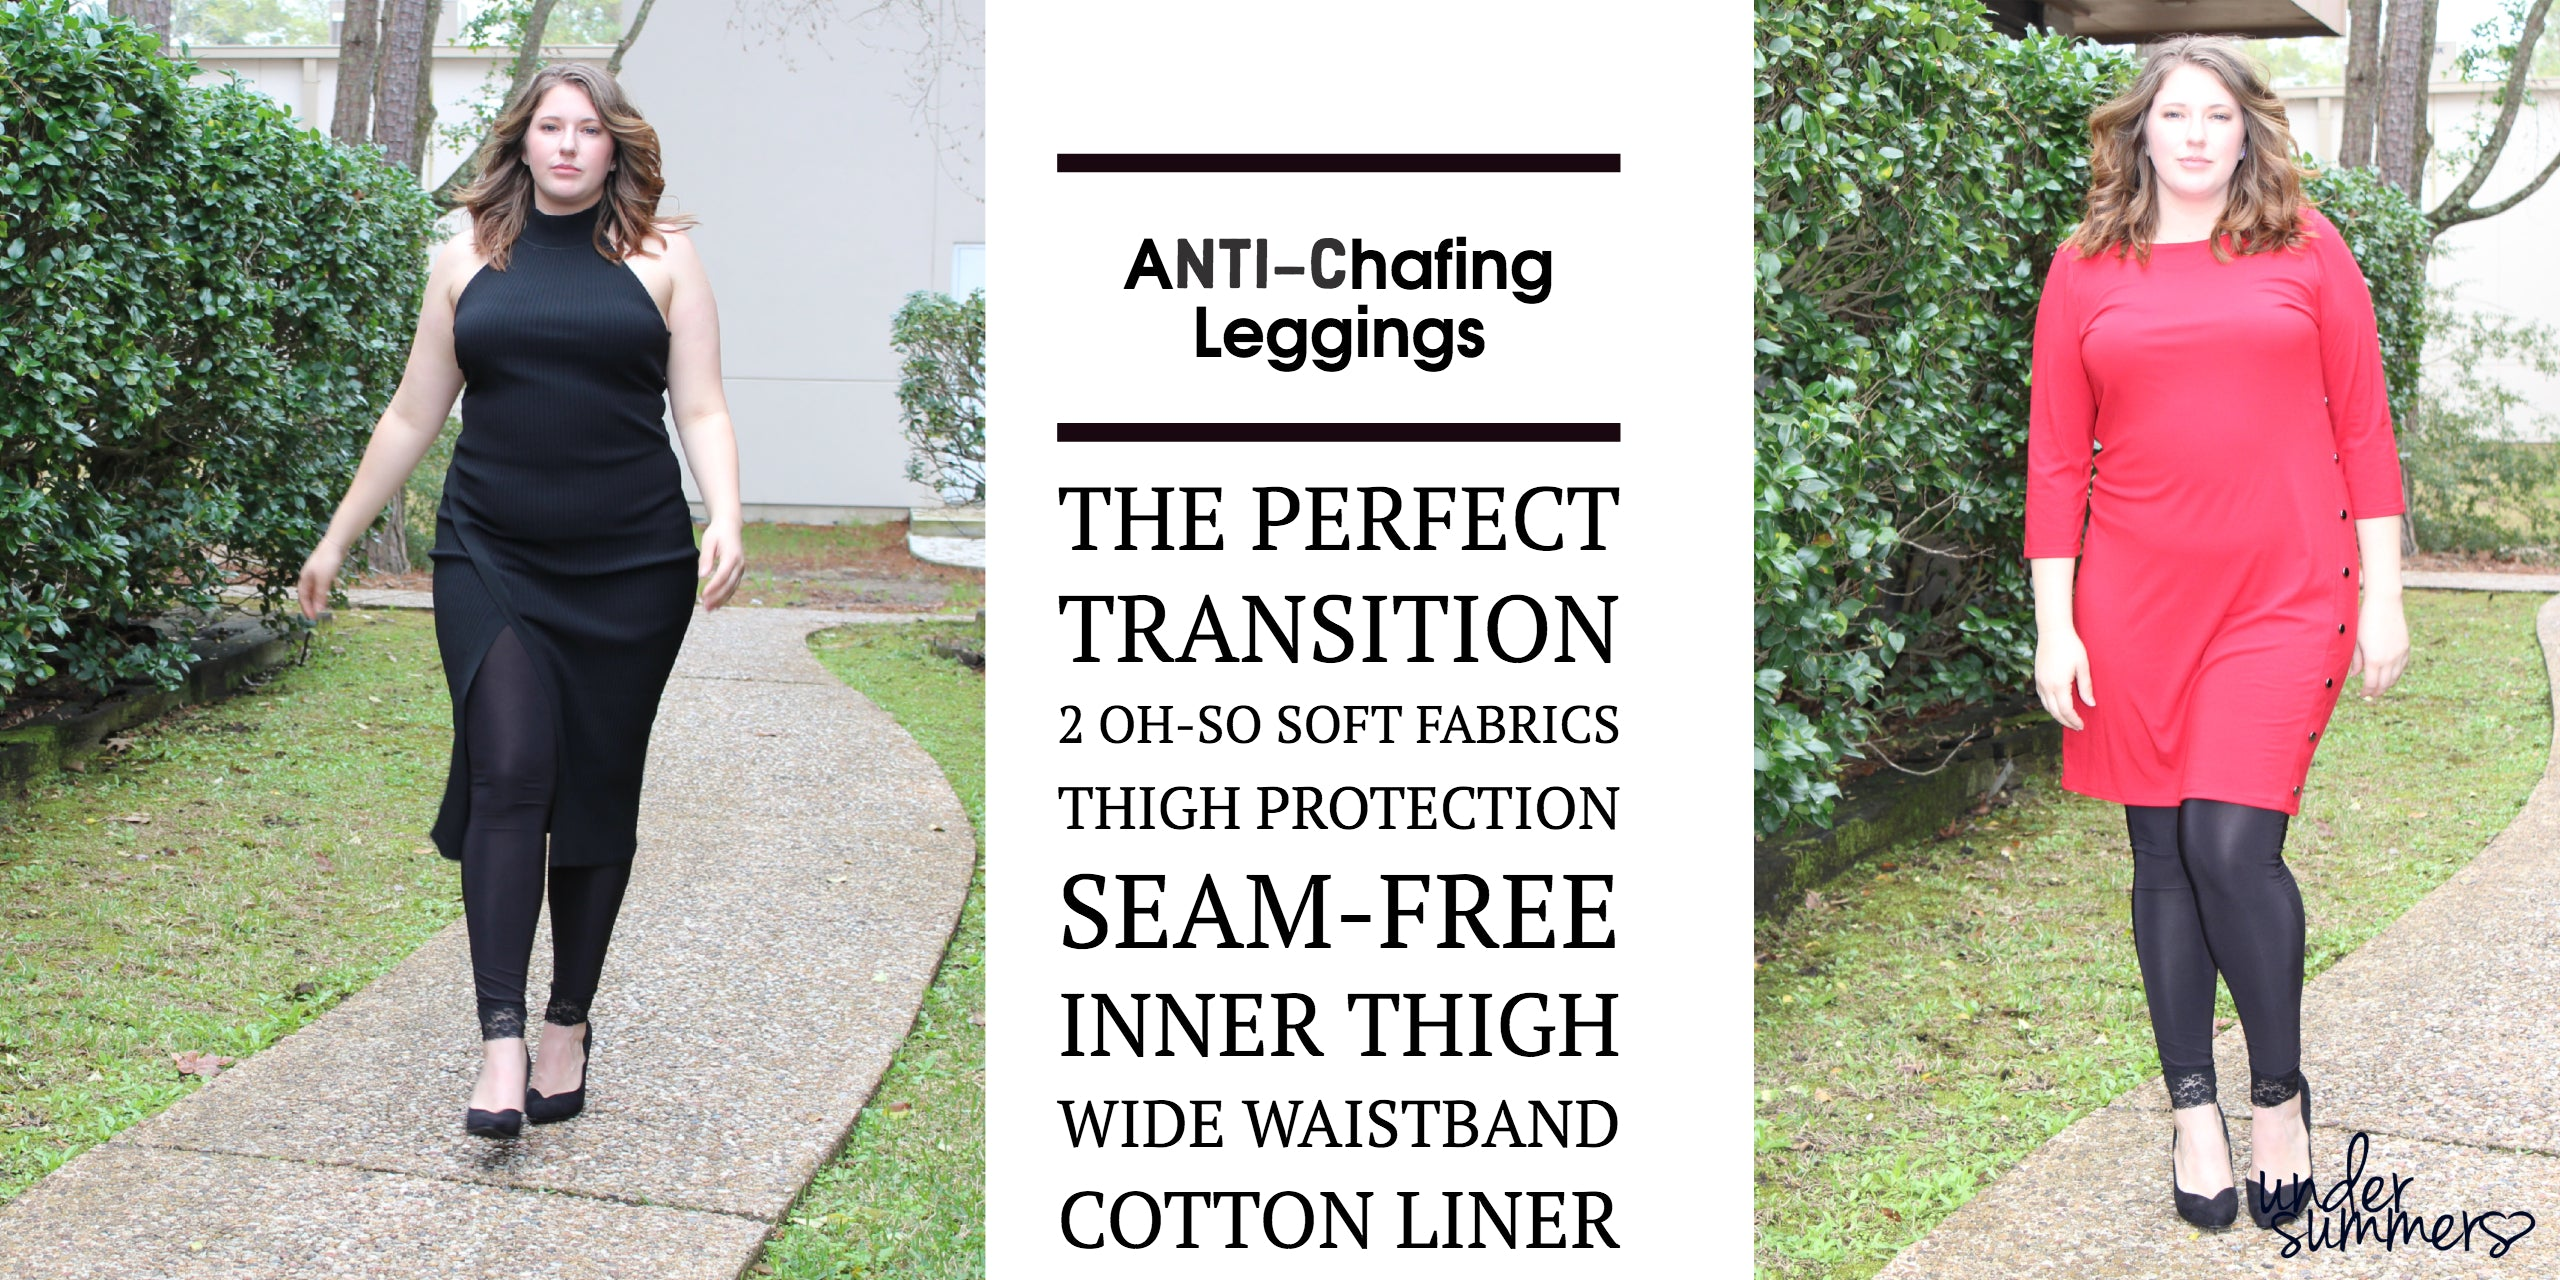 Lightweight Anti-Chafing leggings in regular and plus sizes in black.  Made in the USA of premium fabric for long lasting, comfortable thigh protection under skirts and dresses.